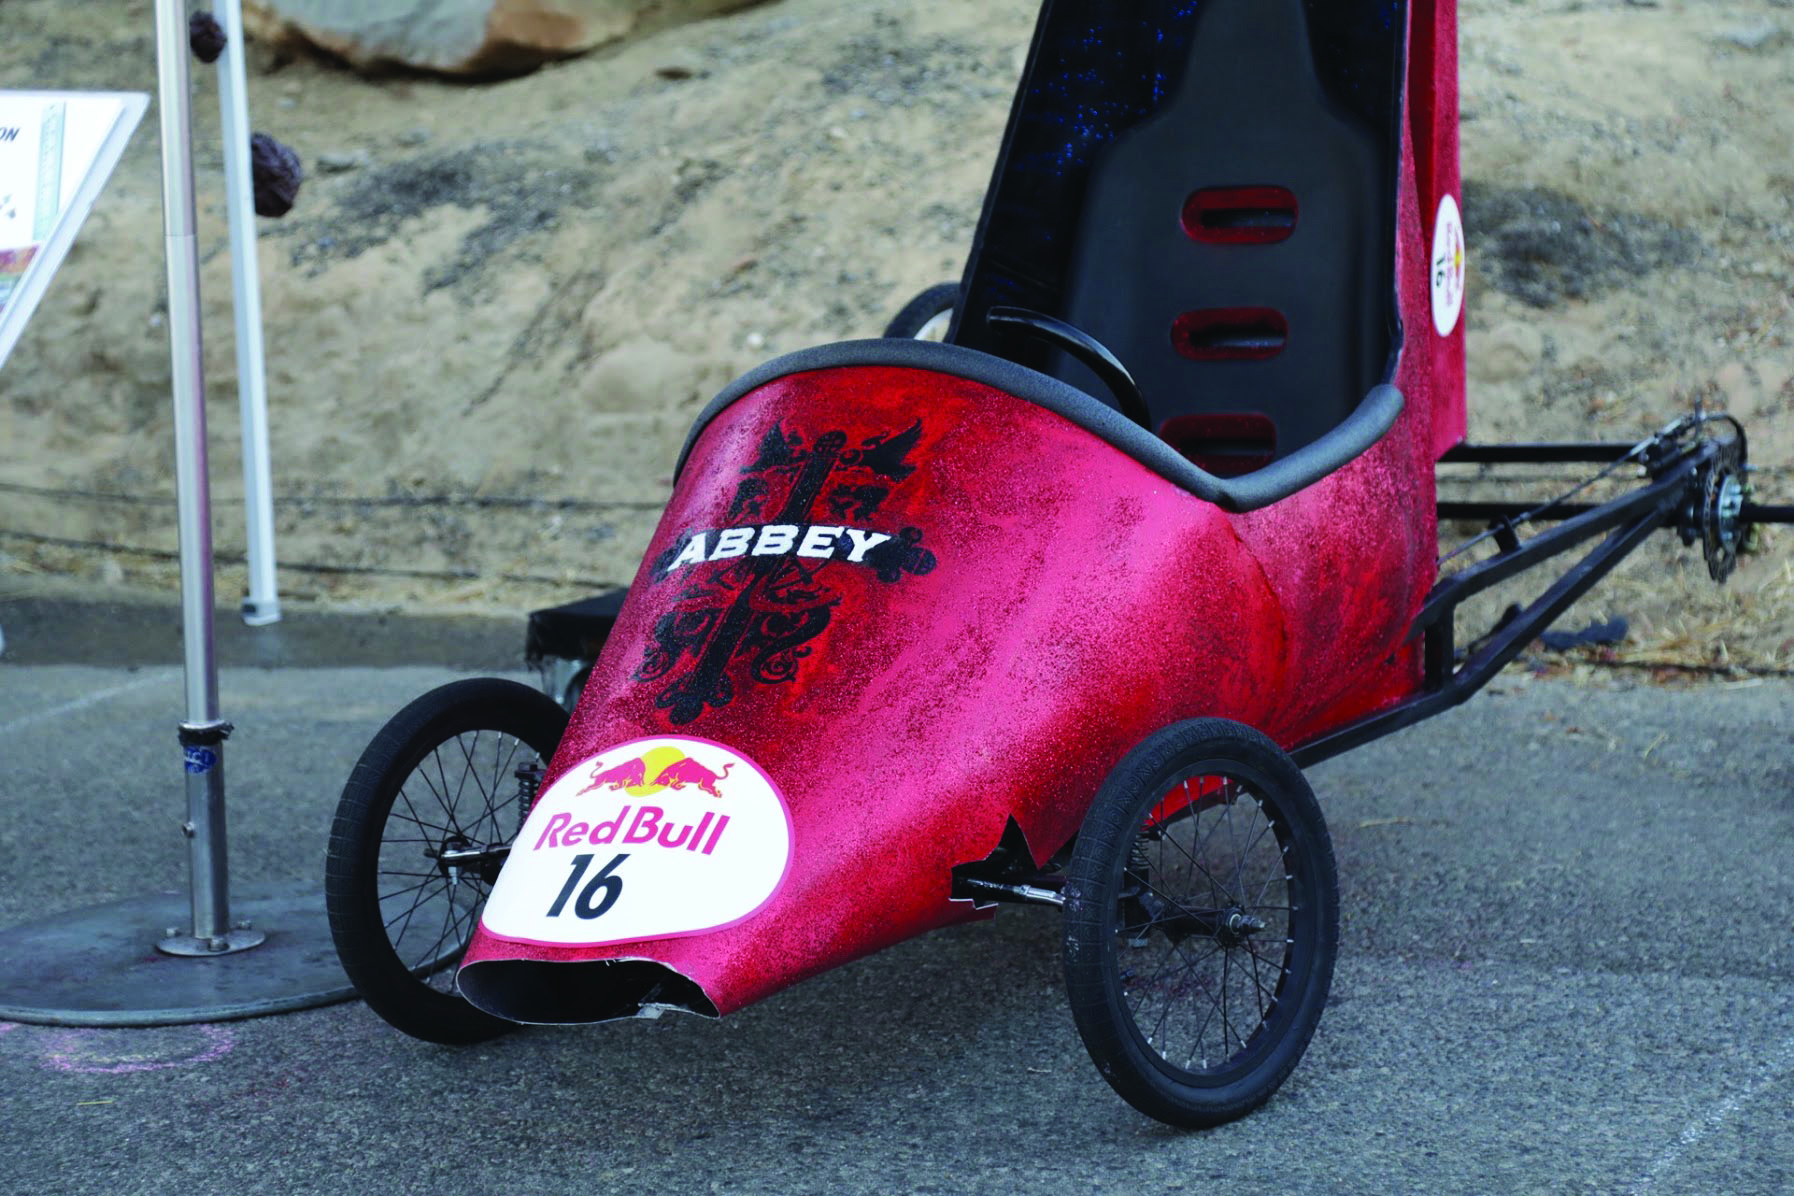 abbey-west-hollywood-soapbox-race-redbull